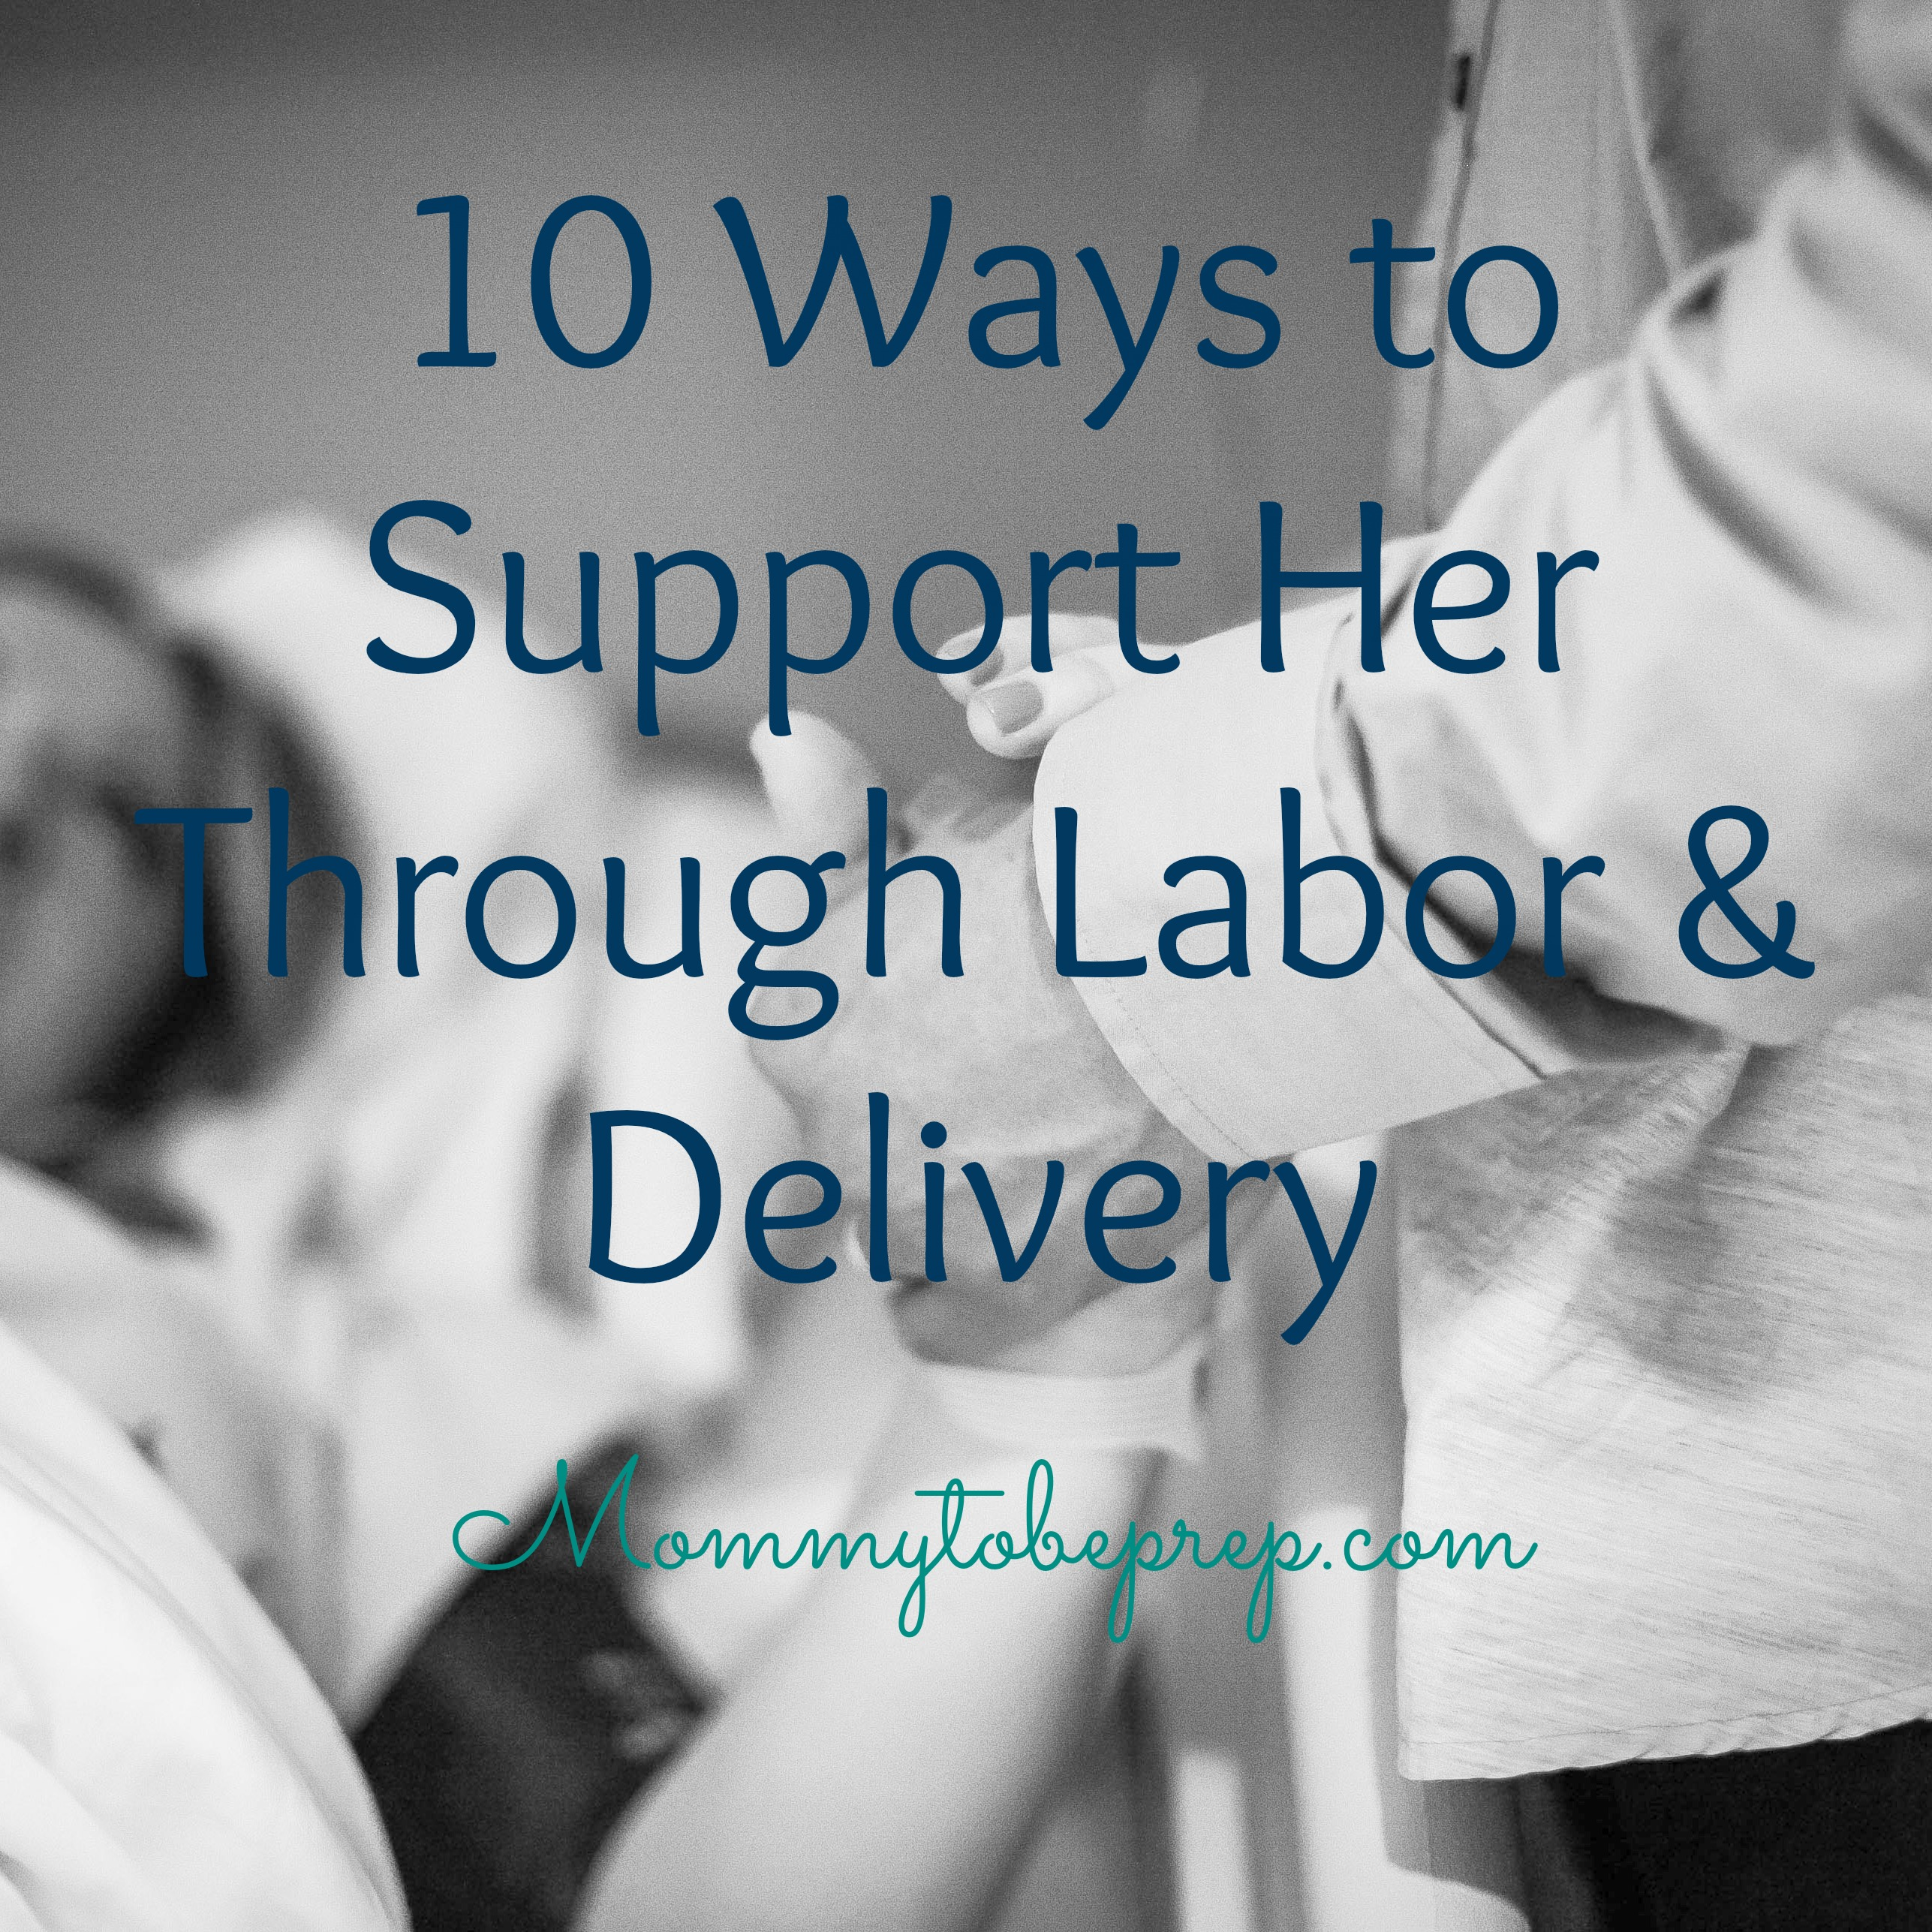 10 Ways to Support Her Through Labor & Delivery